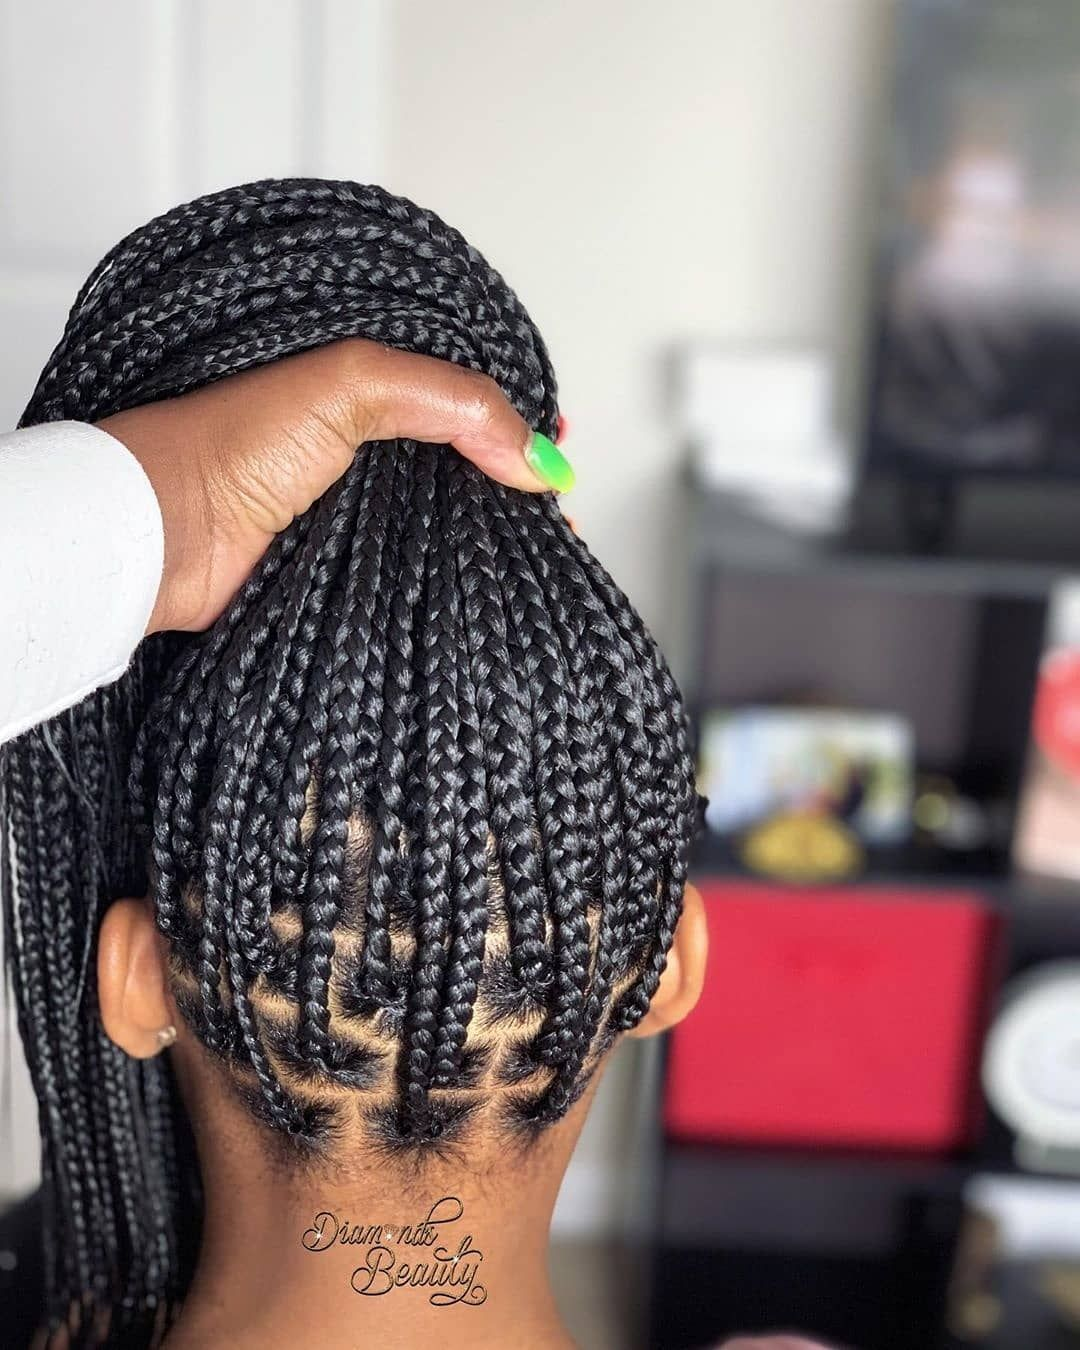 Uly 6 7 2019 On Instagra Single Braids Hairstyles Hair Styles African Braids Hairstyles